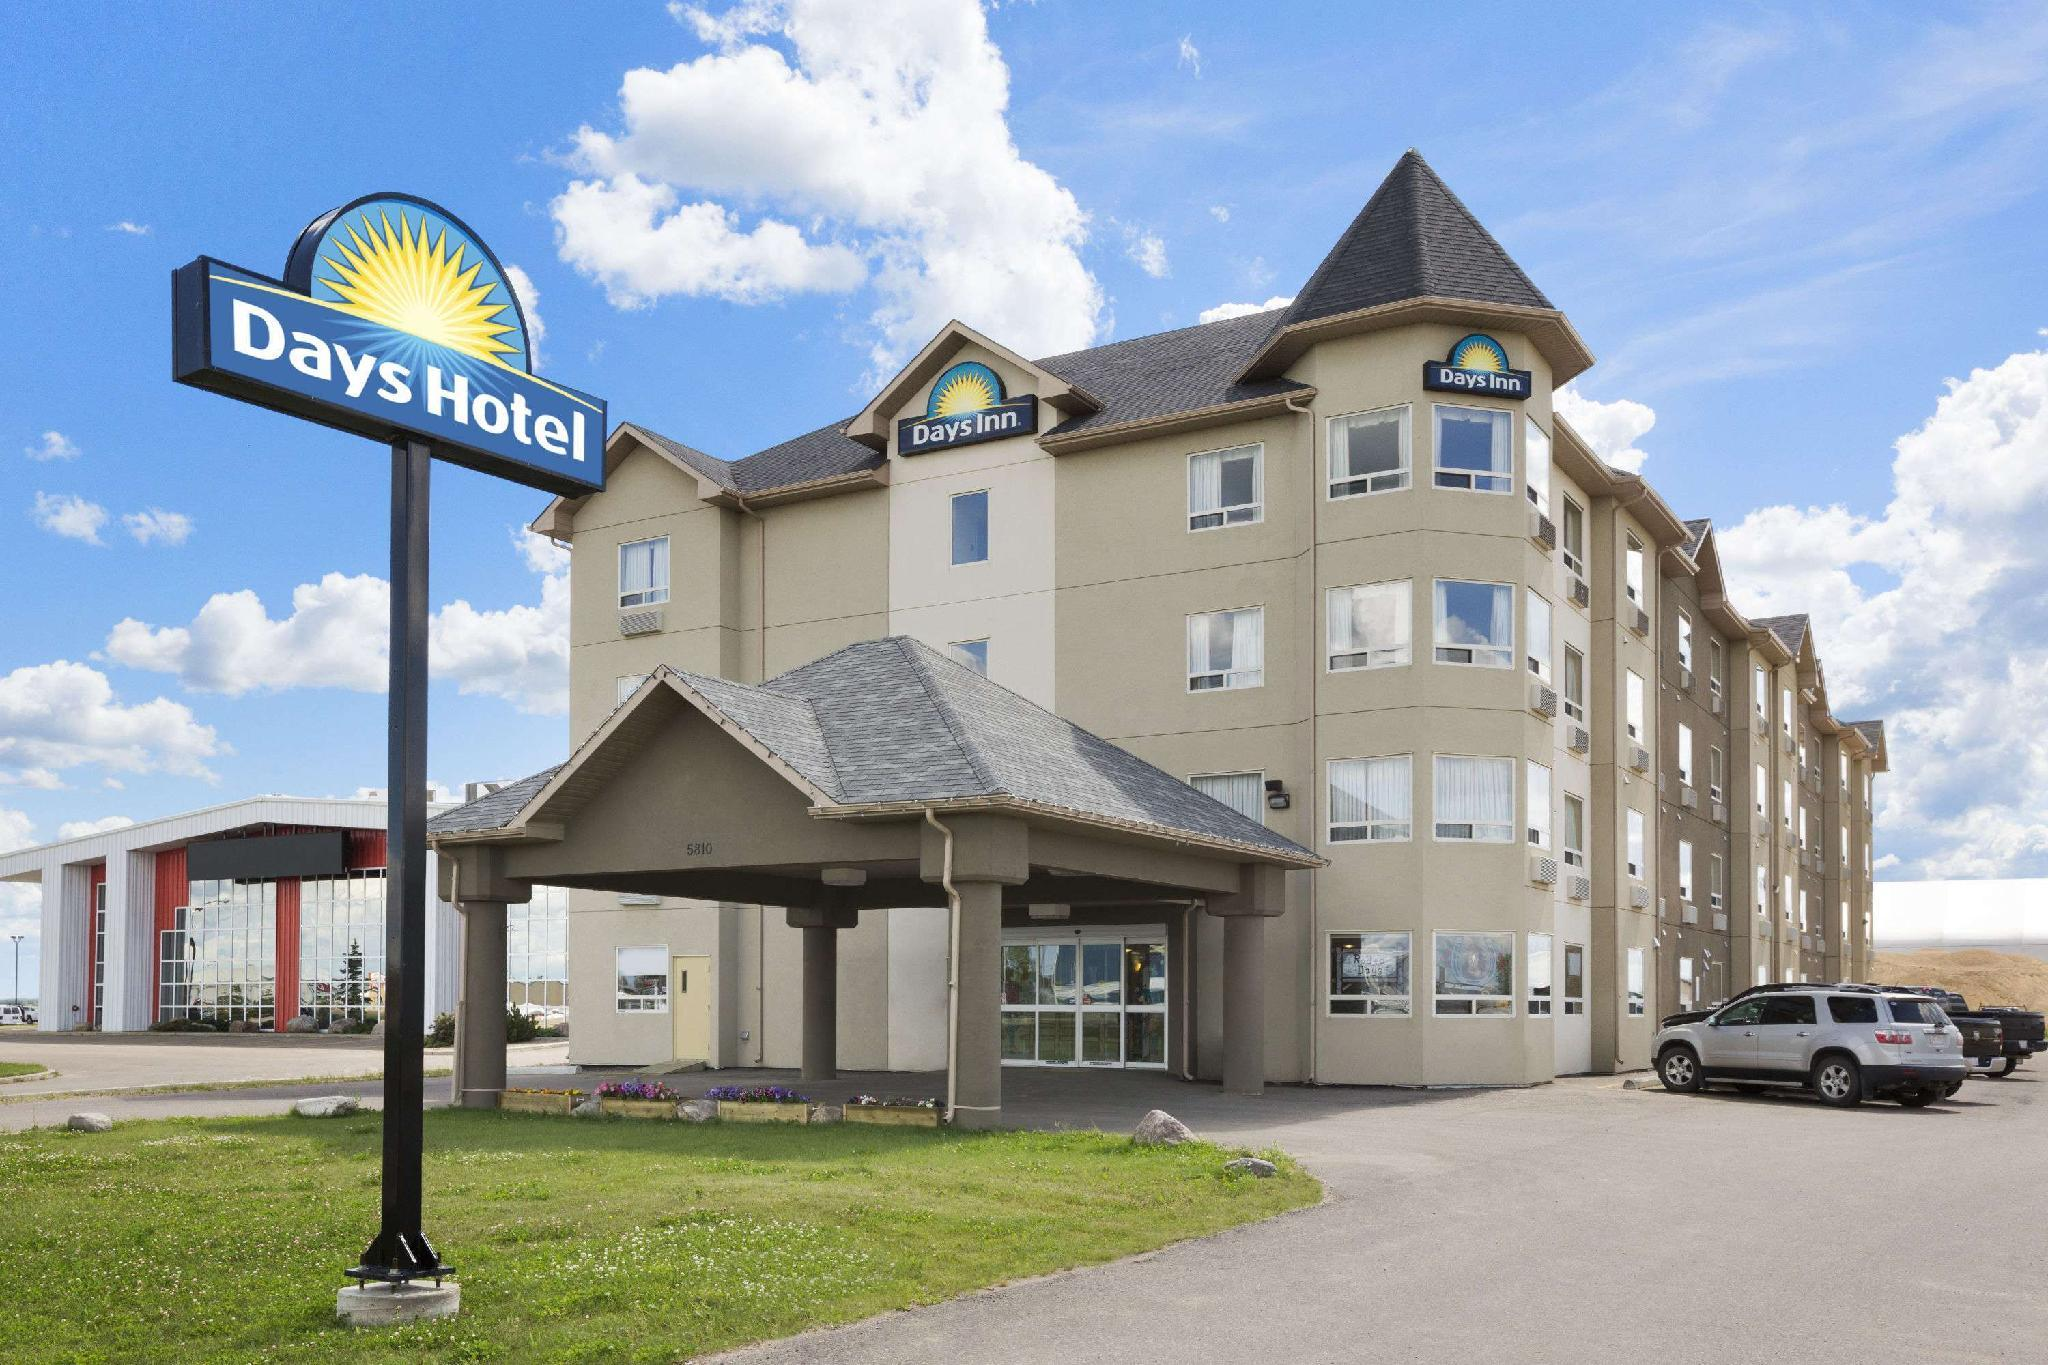 Days Inn by Wyndham Bonnyville, Division No. 12